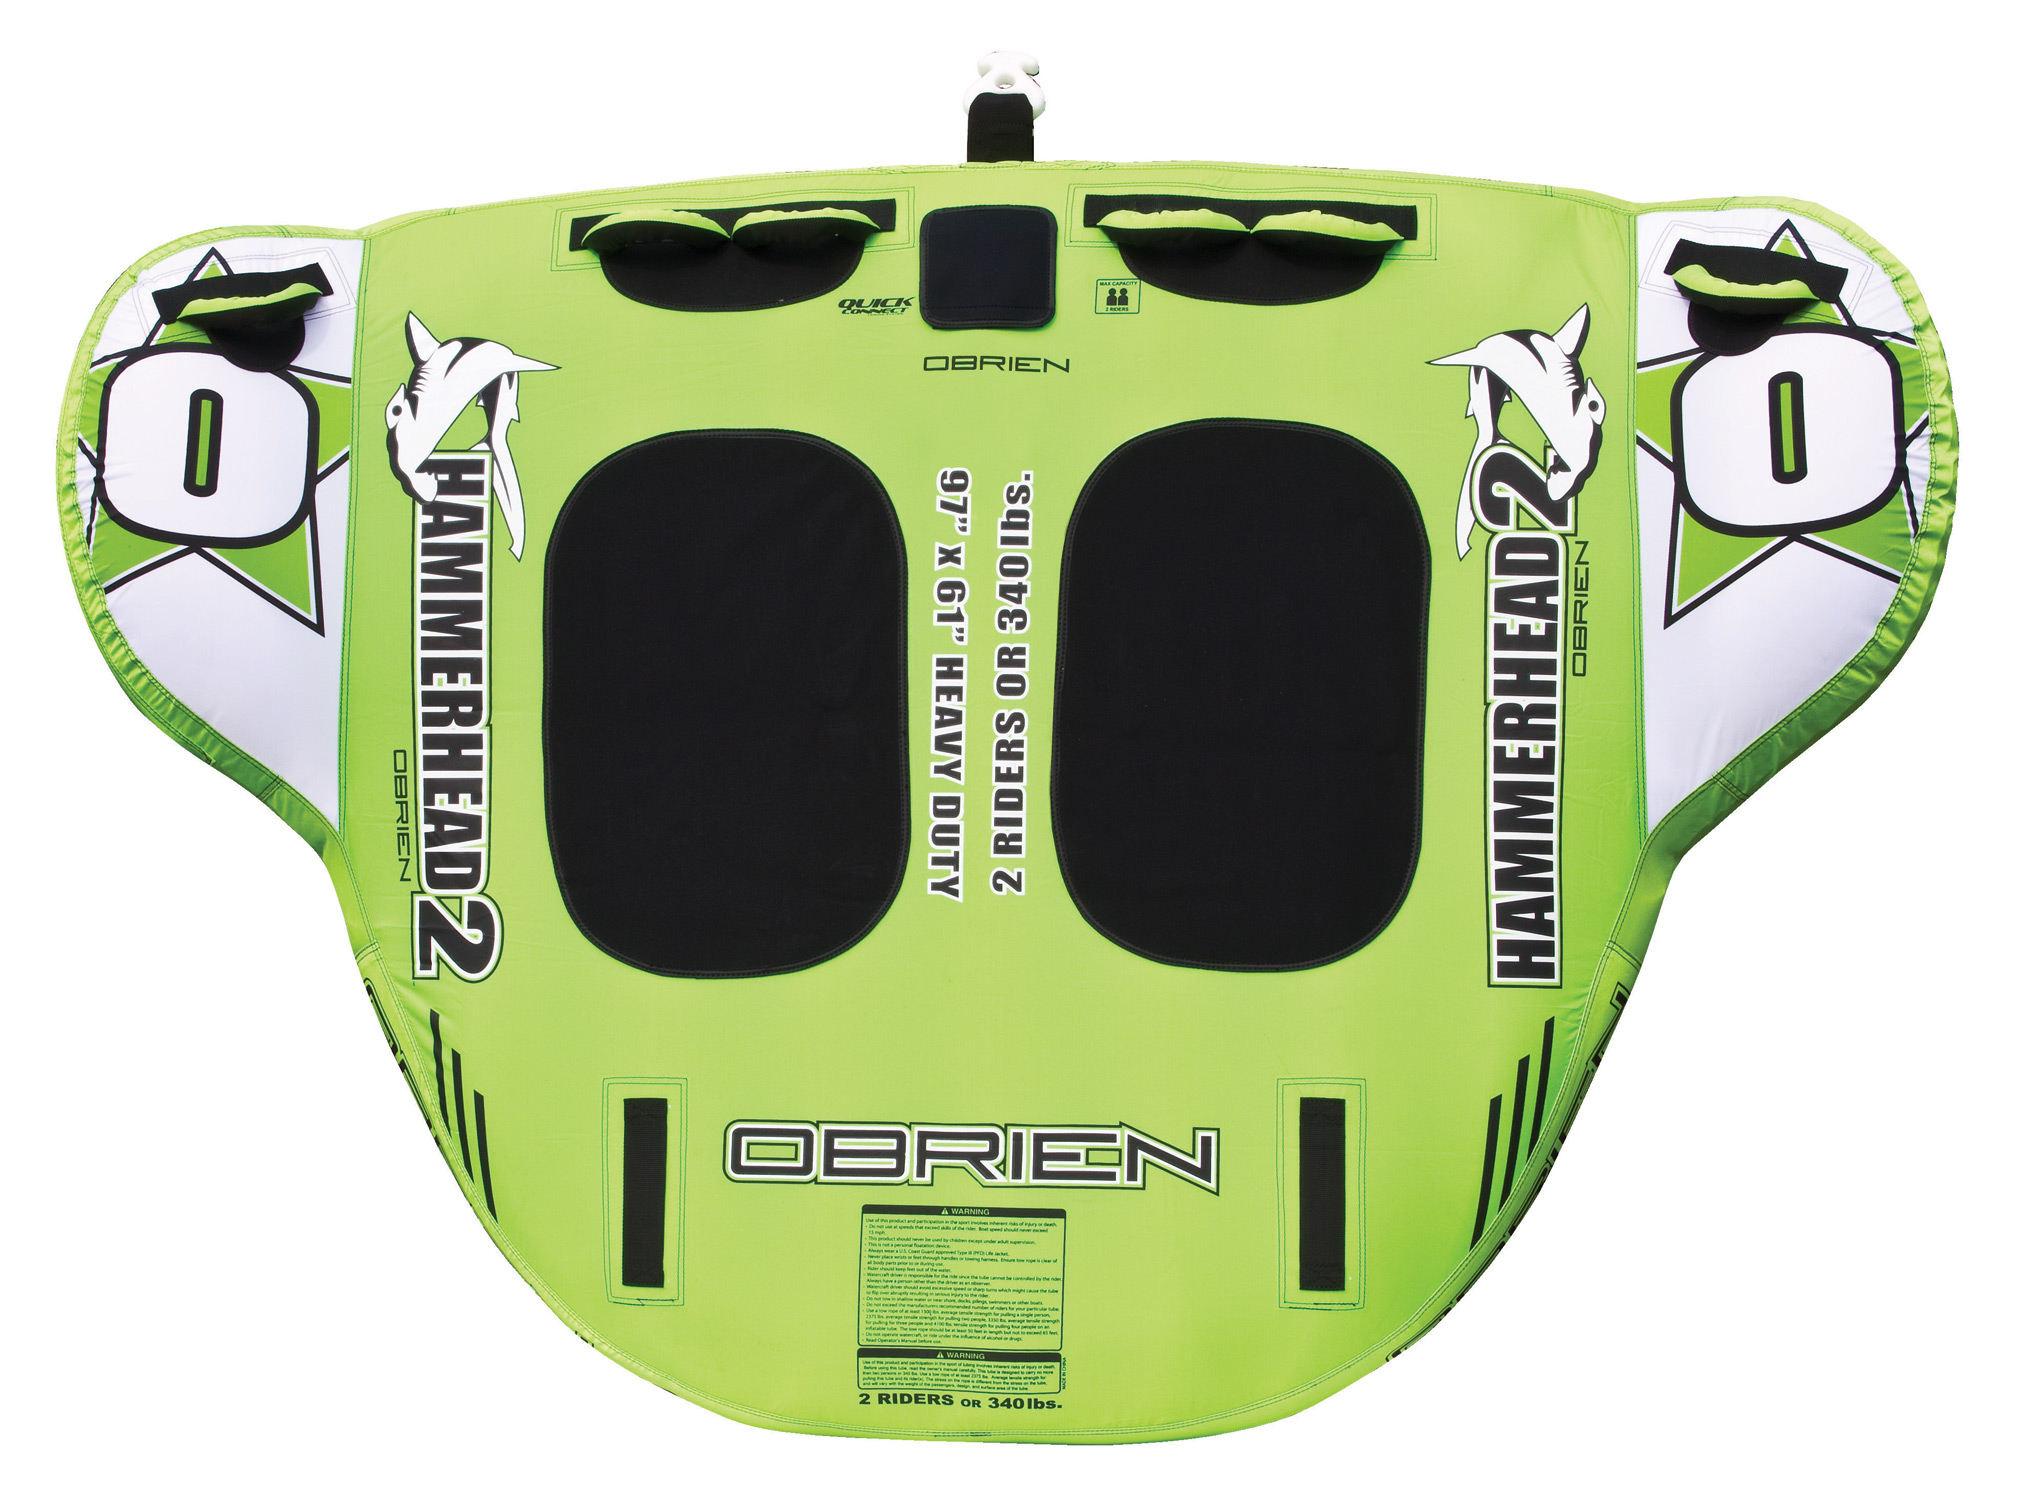 "Key Features of the O'Brien Hammer Head 2 Tube: 61"" X 97"" 2 Rider 28 Gauge Pvc Fully Covered 420/840 D Nylon 6 Handles W/ Eva Knuckle Guards 2 Eva Pads 1 Quick Connect Tow Hook 1 Boston Valve One Year Limited Warranty - $169.99"